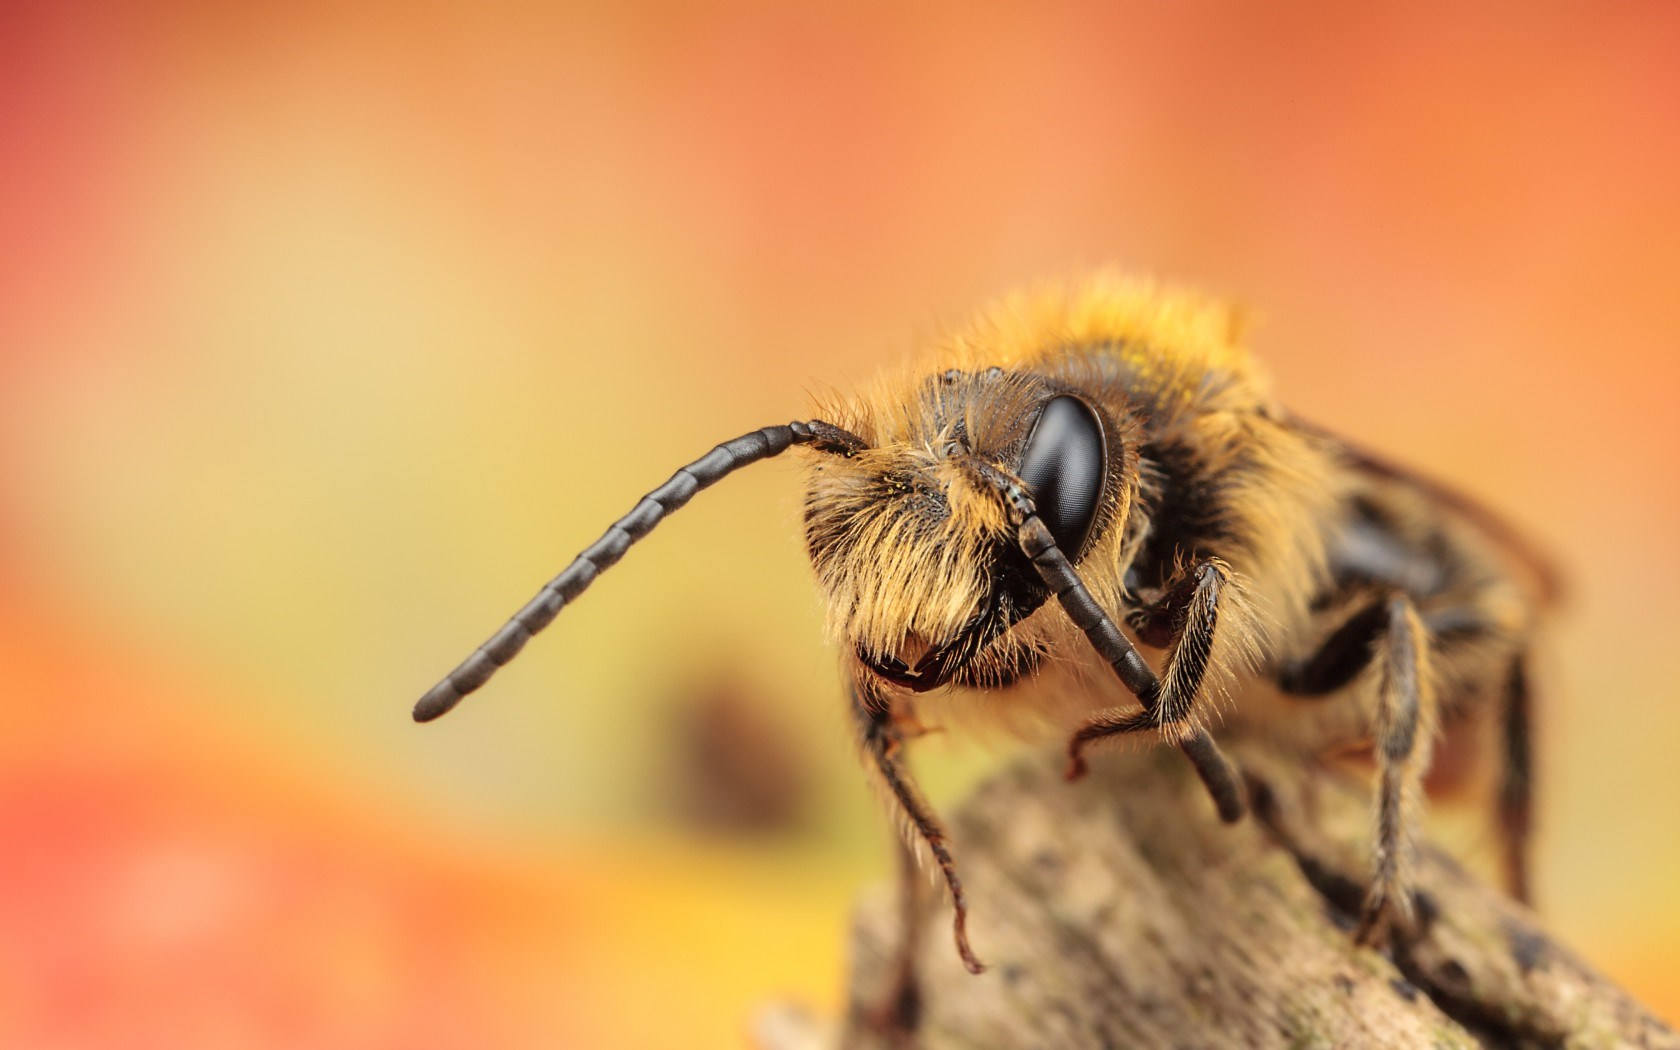 Bee Wallpapers HD Pictures One HD Wallpaper Pictures Backgrounds 1680x1050